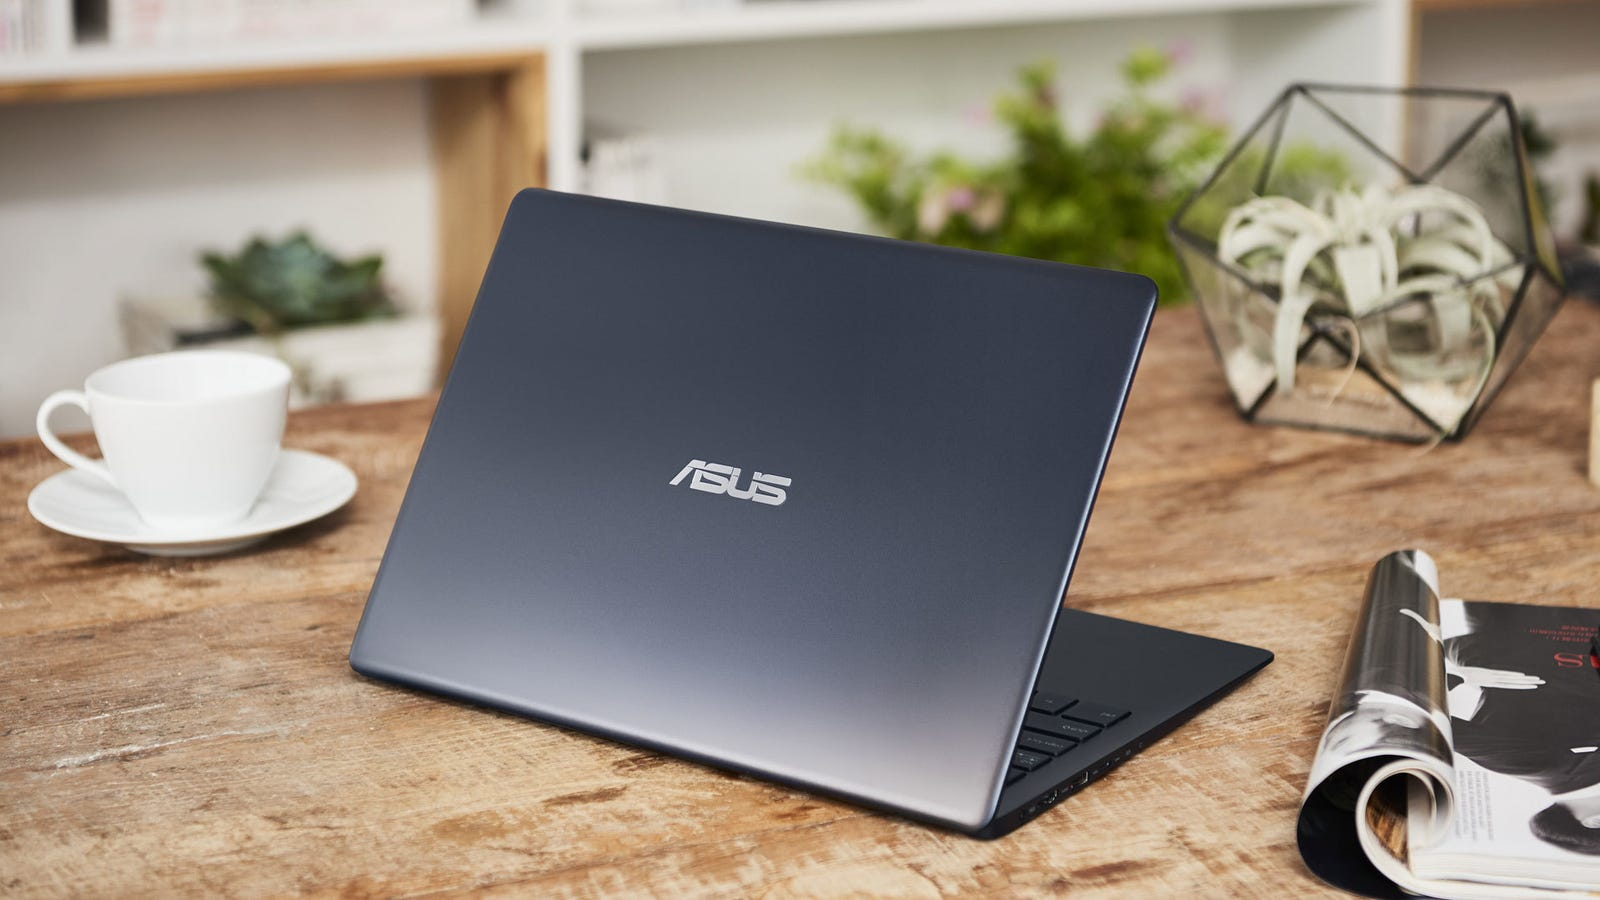 QnA VBage Check if Your Asus Computer Is Among Those Affected by the 'Shadow Hammer' Malware Attack